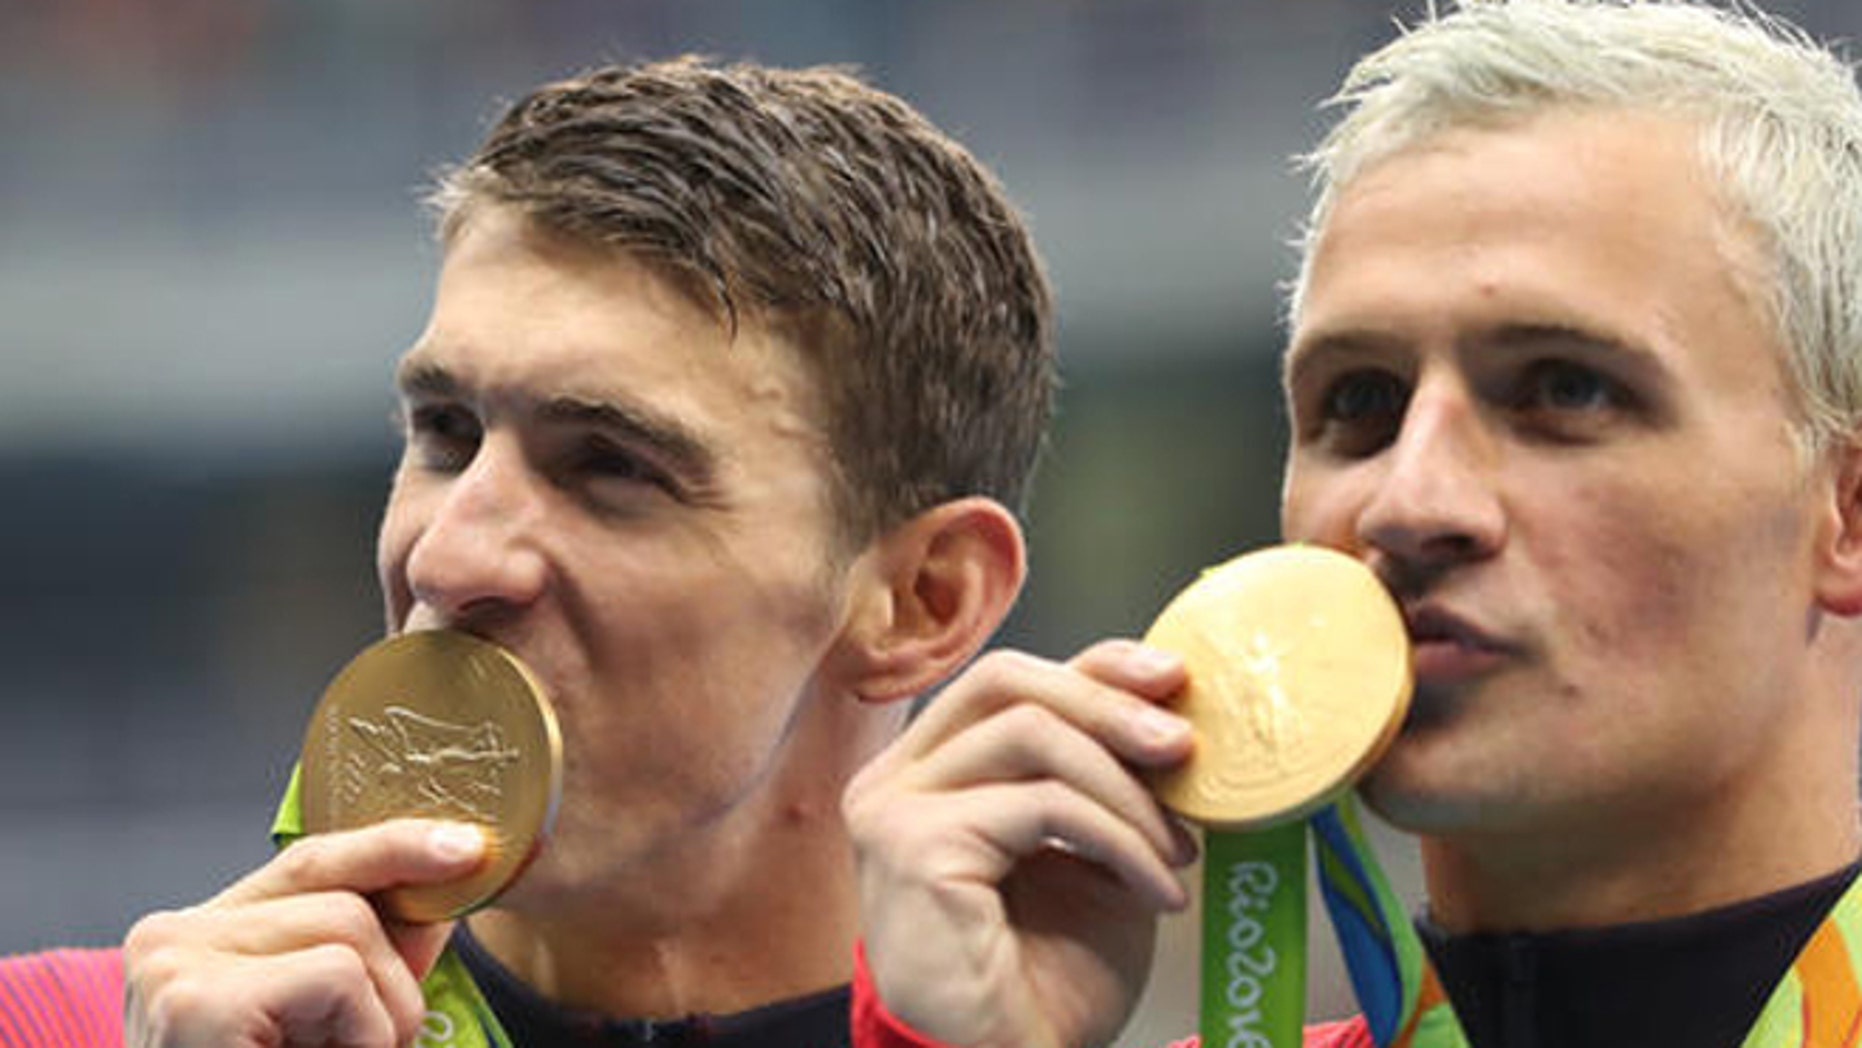 """FILE - In this Wednesday, Aug. 10, 2016, file photo, United States' Michael Phelps, left, and Ryan Lochte celebrate winning the gold medal in the men's 4x200-meter freestyle relay during the swimming competitions at the 2016 Summer Olympics in Rio de Janeiro, Brazil. Phelps isn't sure what kind of moves Lochte has planned for """"Dancing with the Stars."""" """"I've never seen him dance,"""" the 23-time Olympic gold medalist said Friday, Sept. 2, at the """"Call of Duty"""" fan convention in Inglewood, Calif. (AP Photo/Lee Jin-man, File)"""